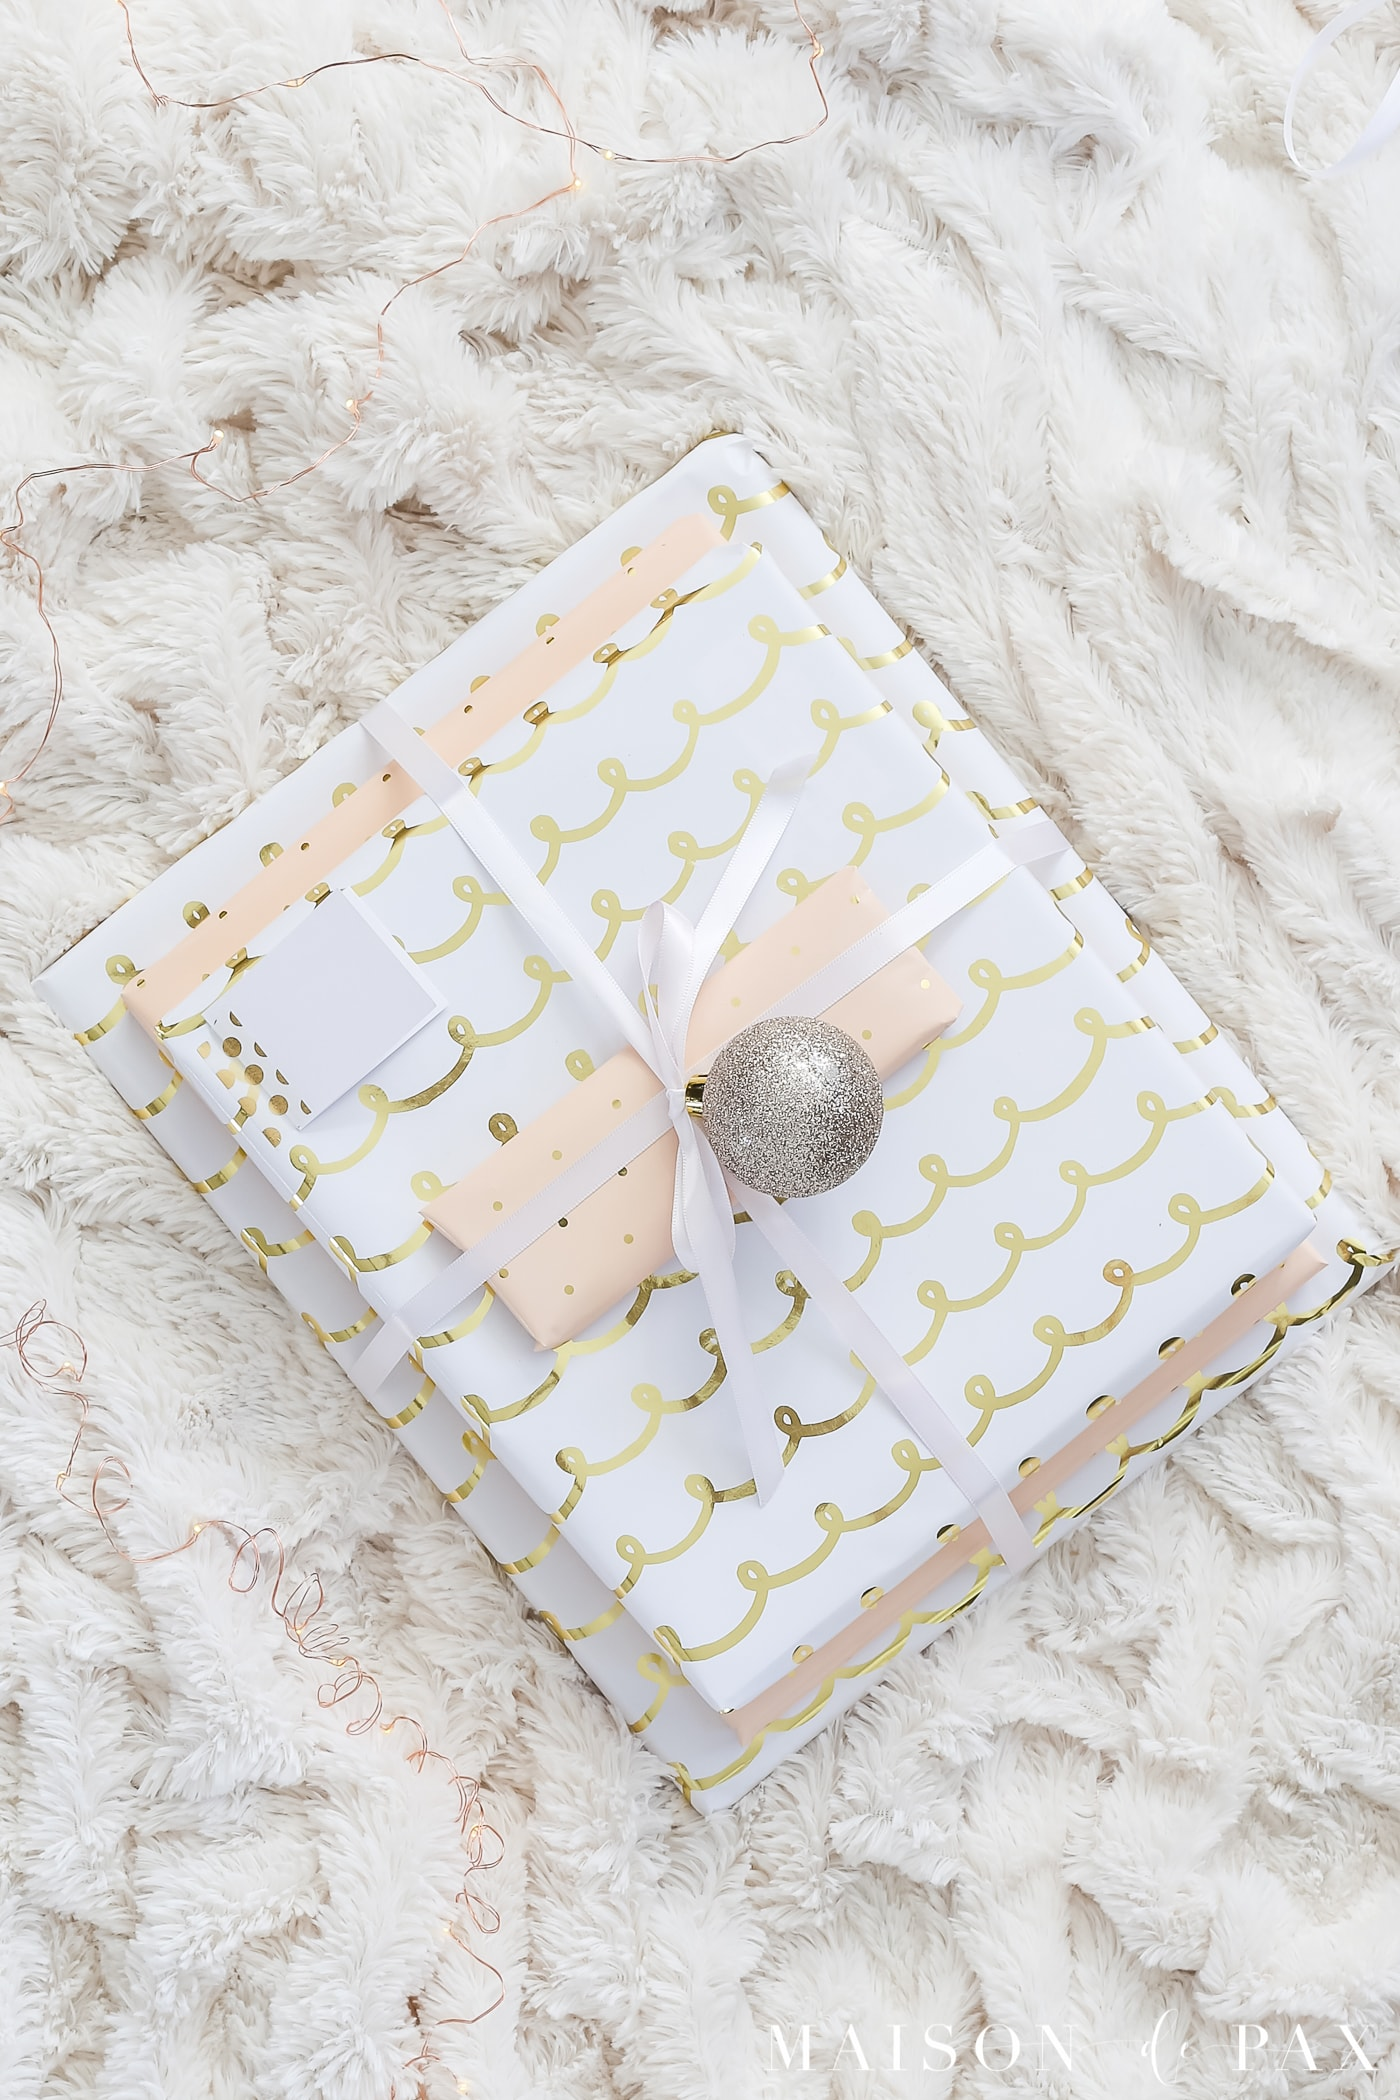 easy gift wrapping ideas: bundle gifts with ribbon #christmaspresents #giftwrap